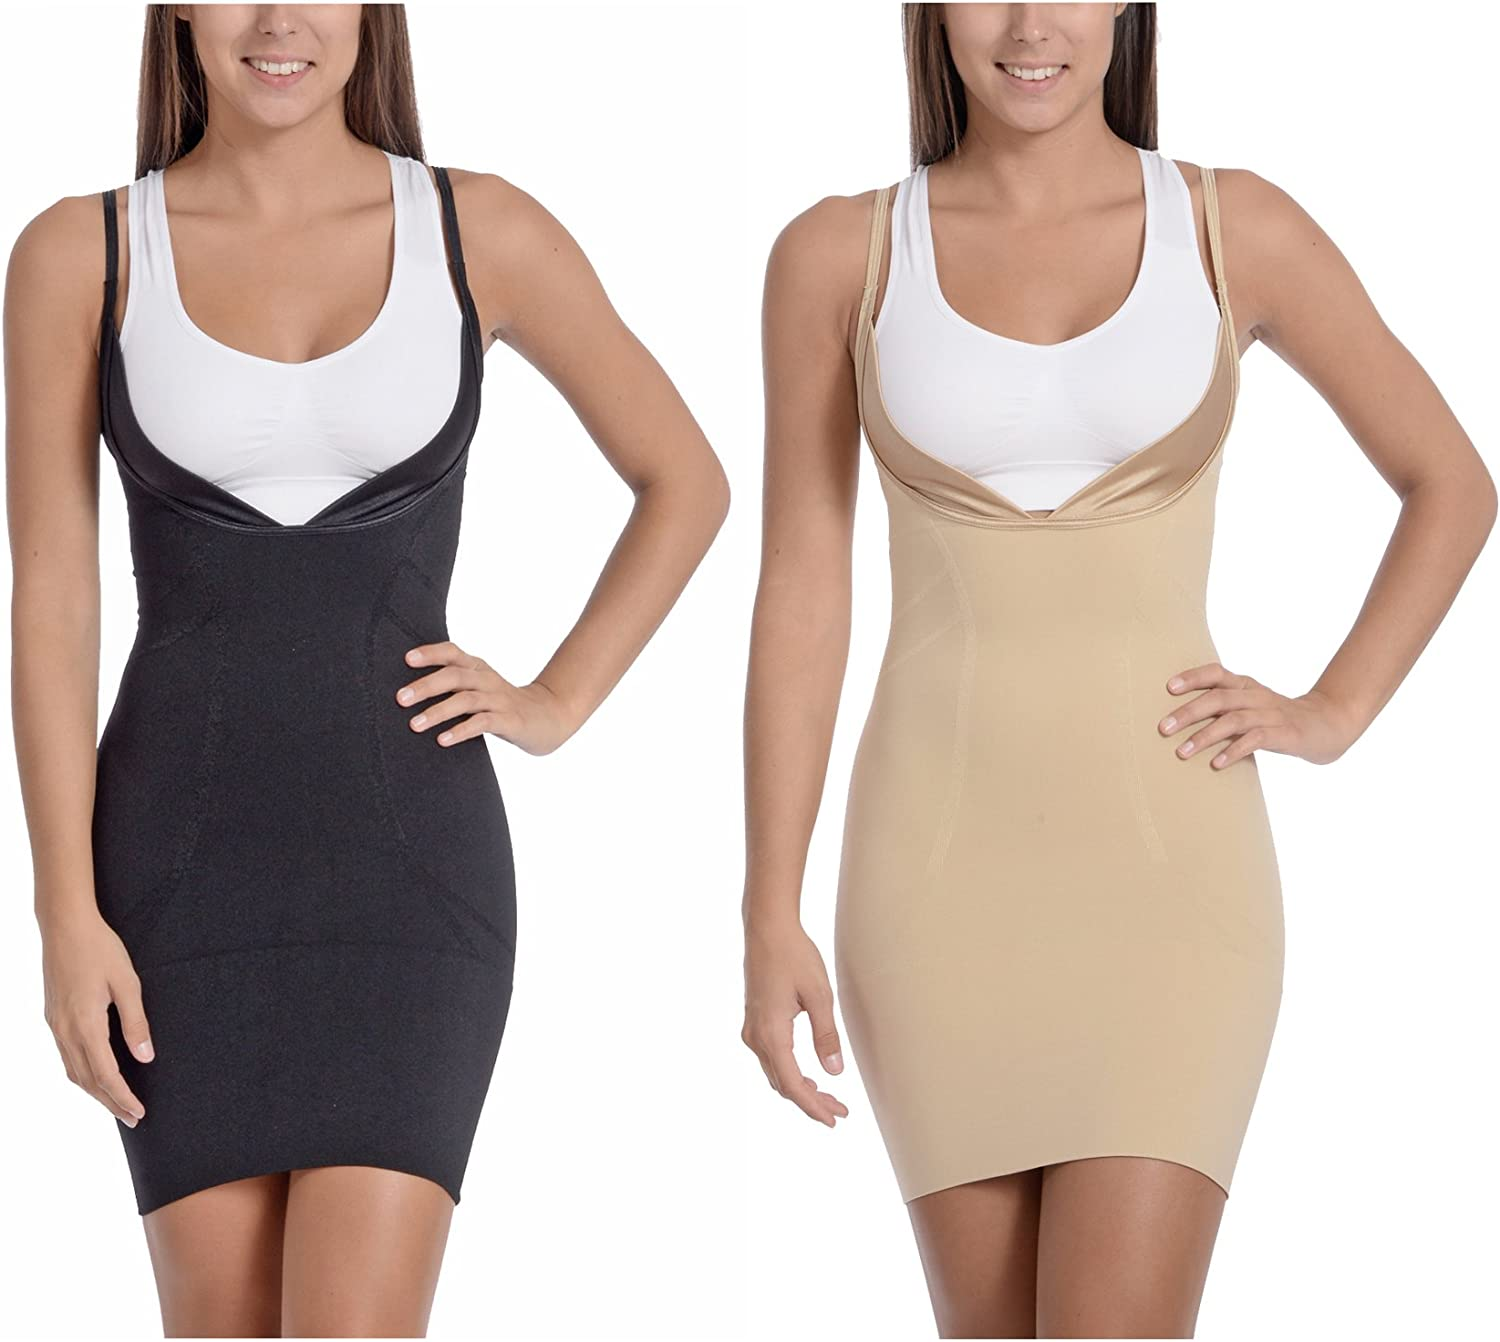 Body Beautiful Womens Seamless Wear Your own Bra Mid Thigh Full Body Slip Shaper with Butt Support with Excellent Slimming.